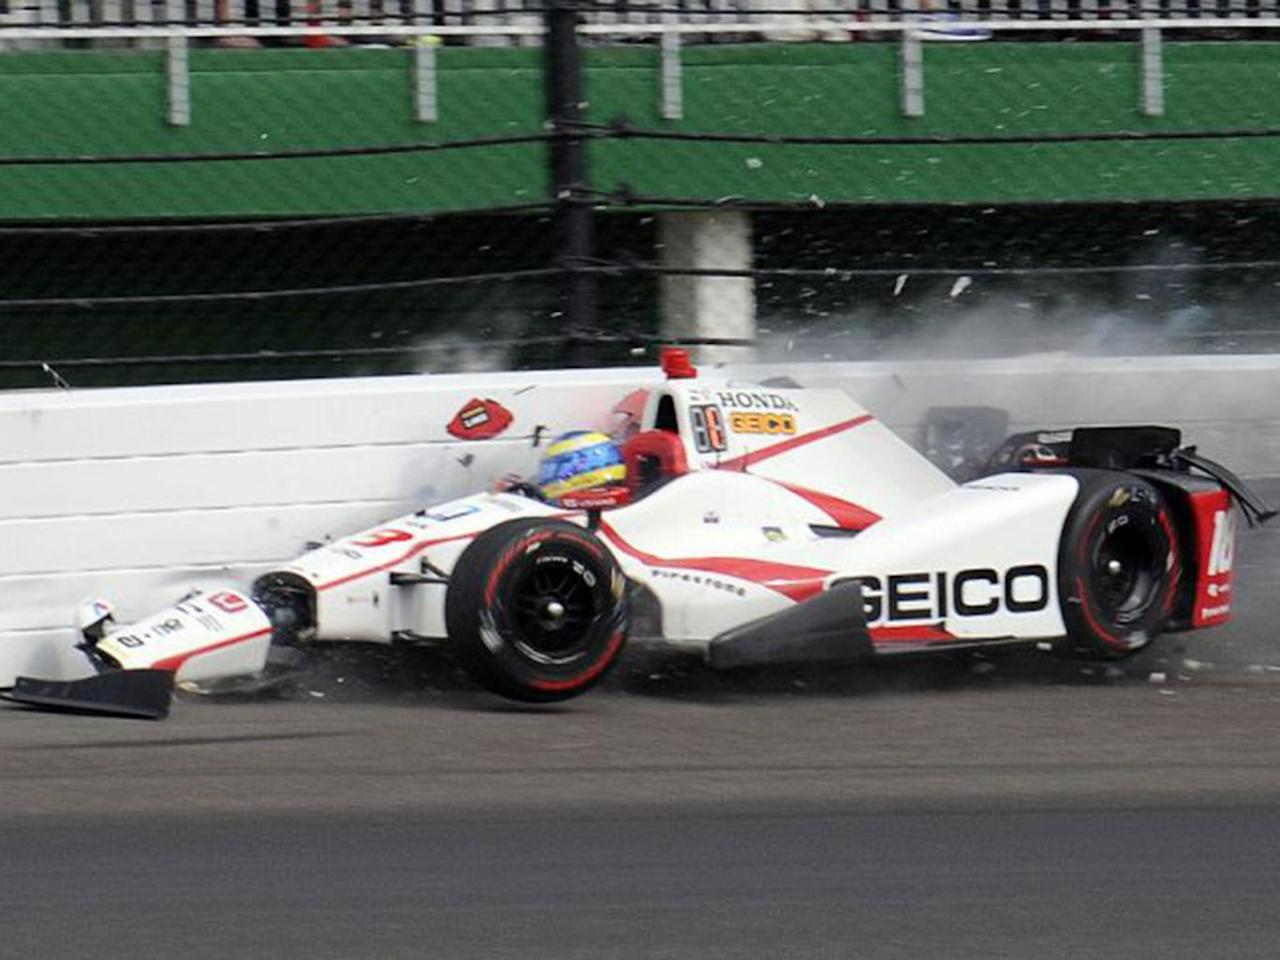 Sebastien Bourdais crash: Ex-F1 driver suffers fractured pelvis and hip in Indy 500 qualifying accident